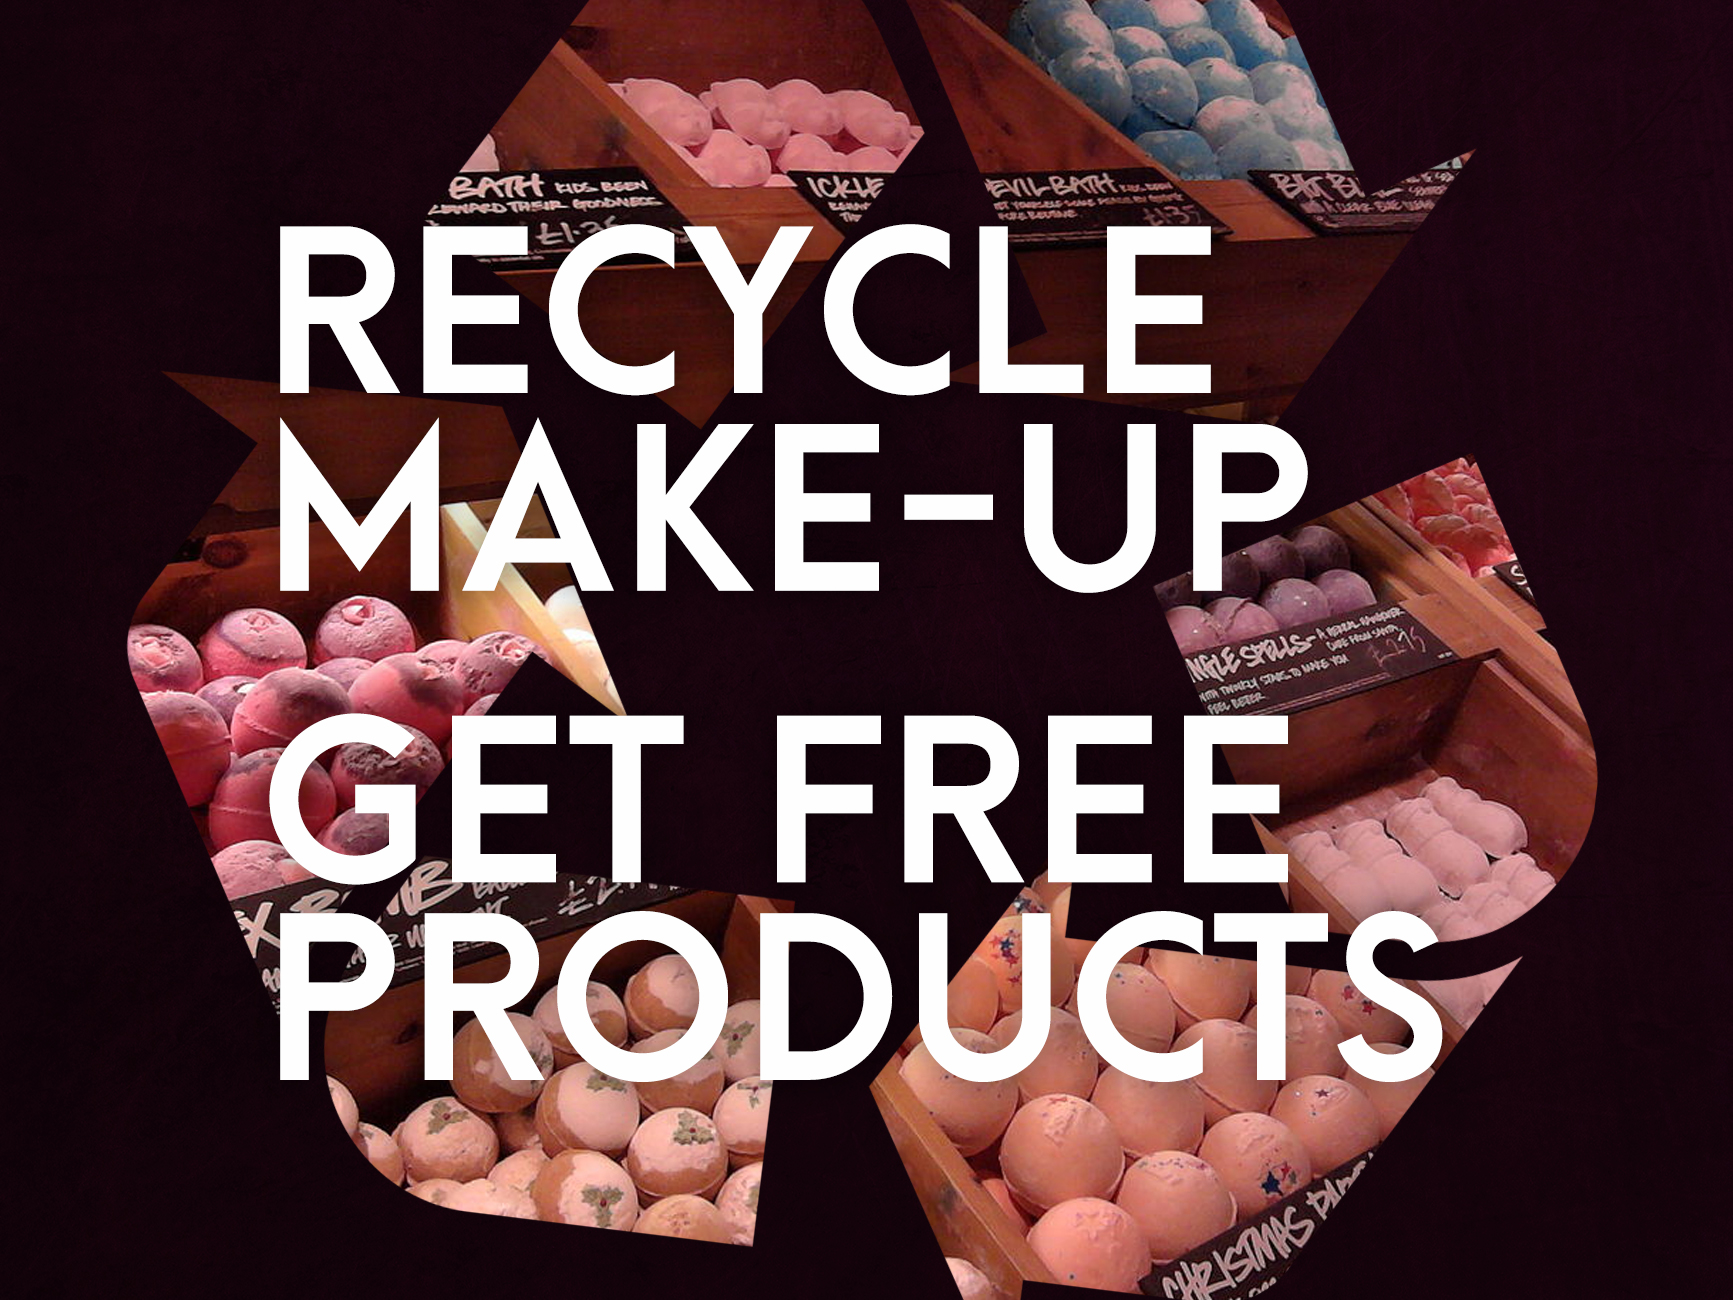 Get free beauty products by recycling